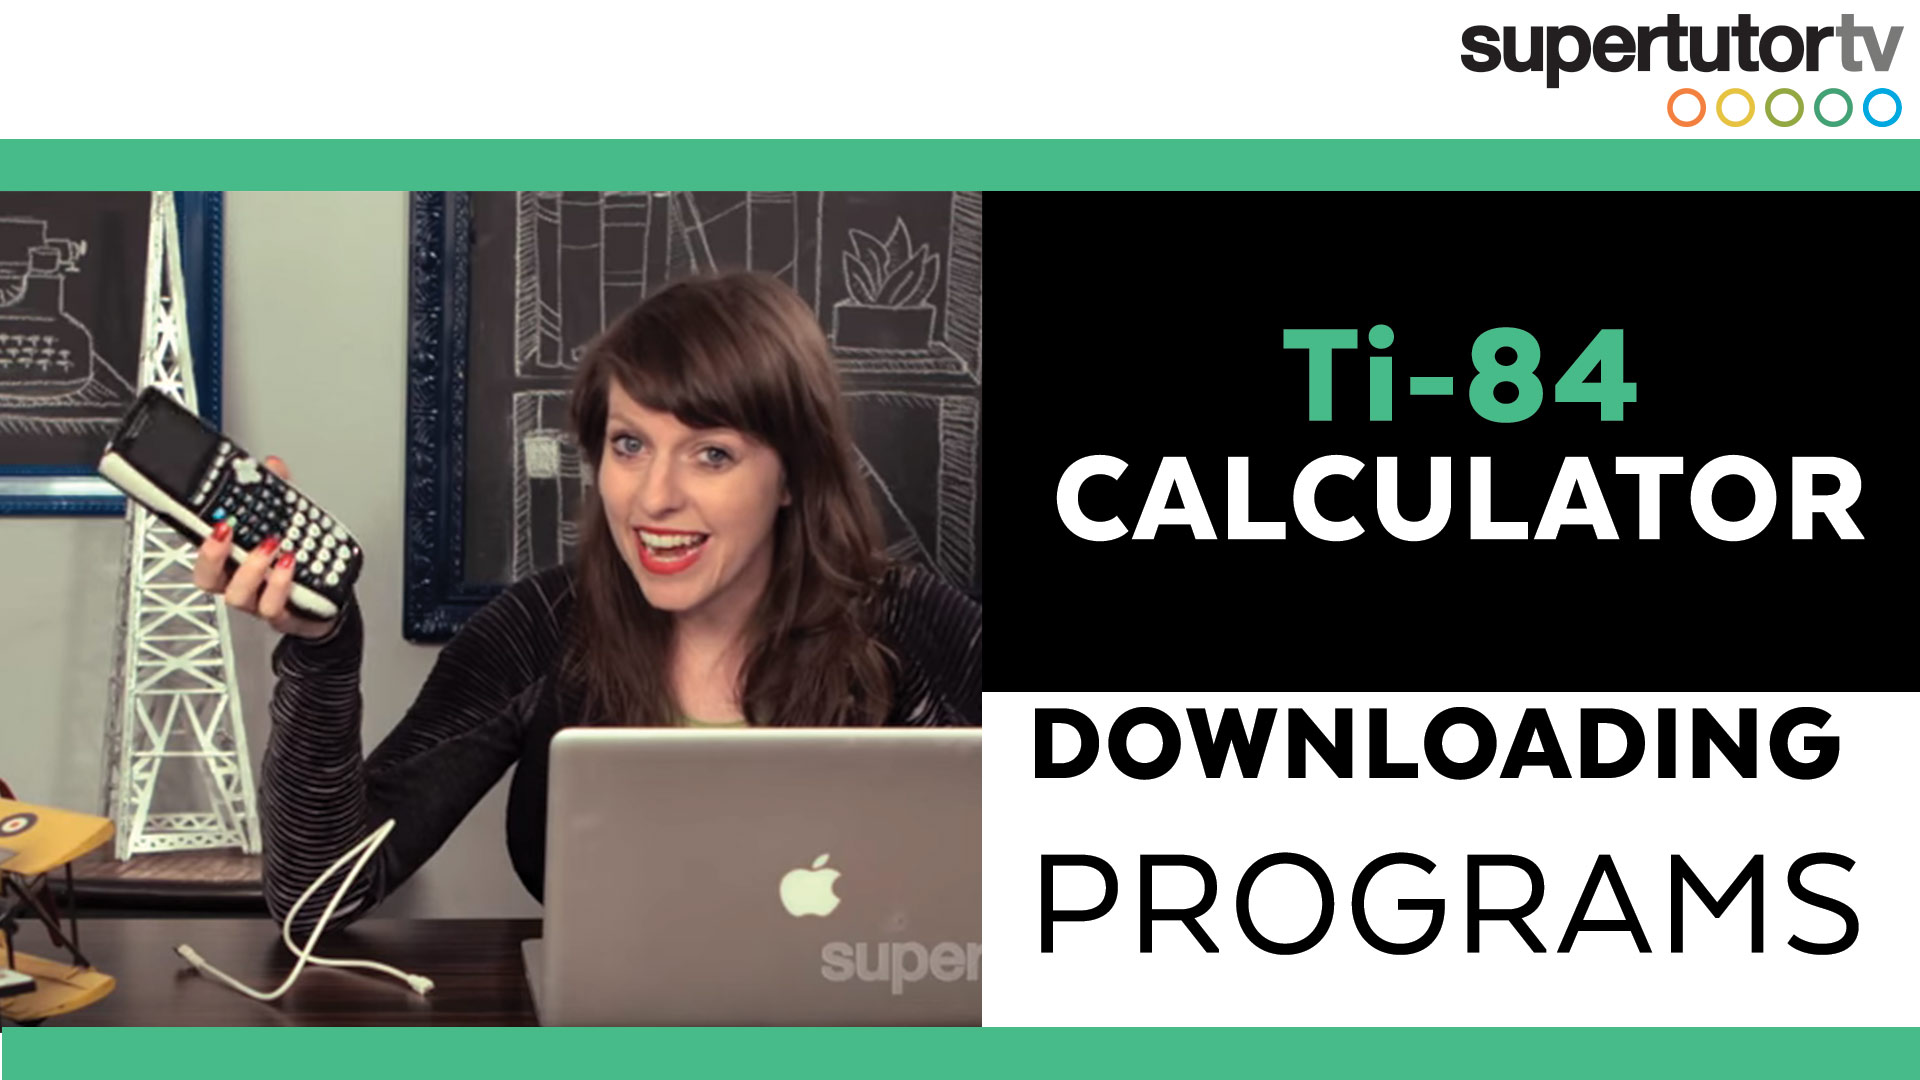 TI-84 Calculator: Downloading Programs | SupertutorTV